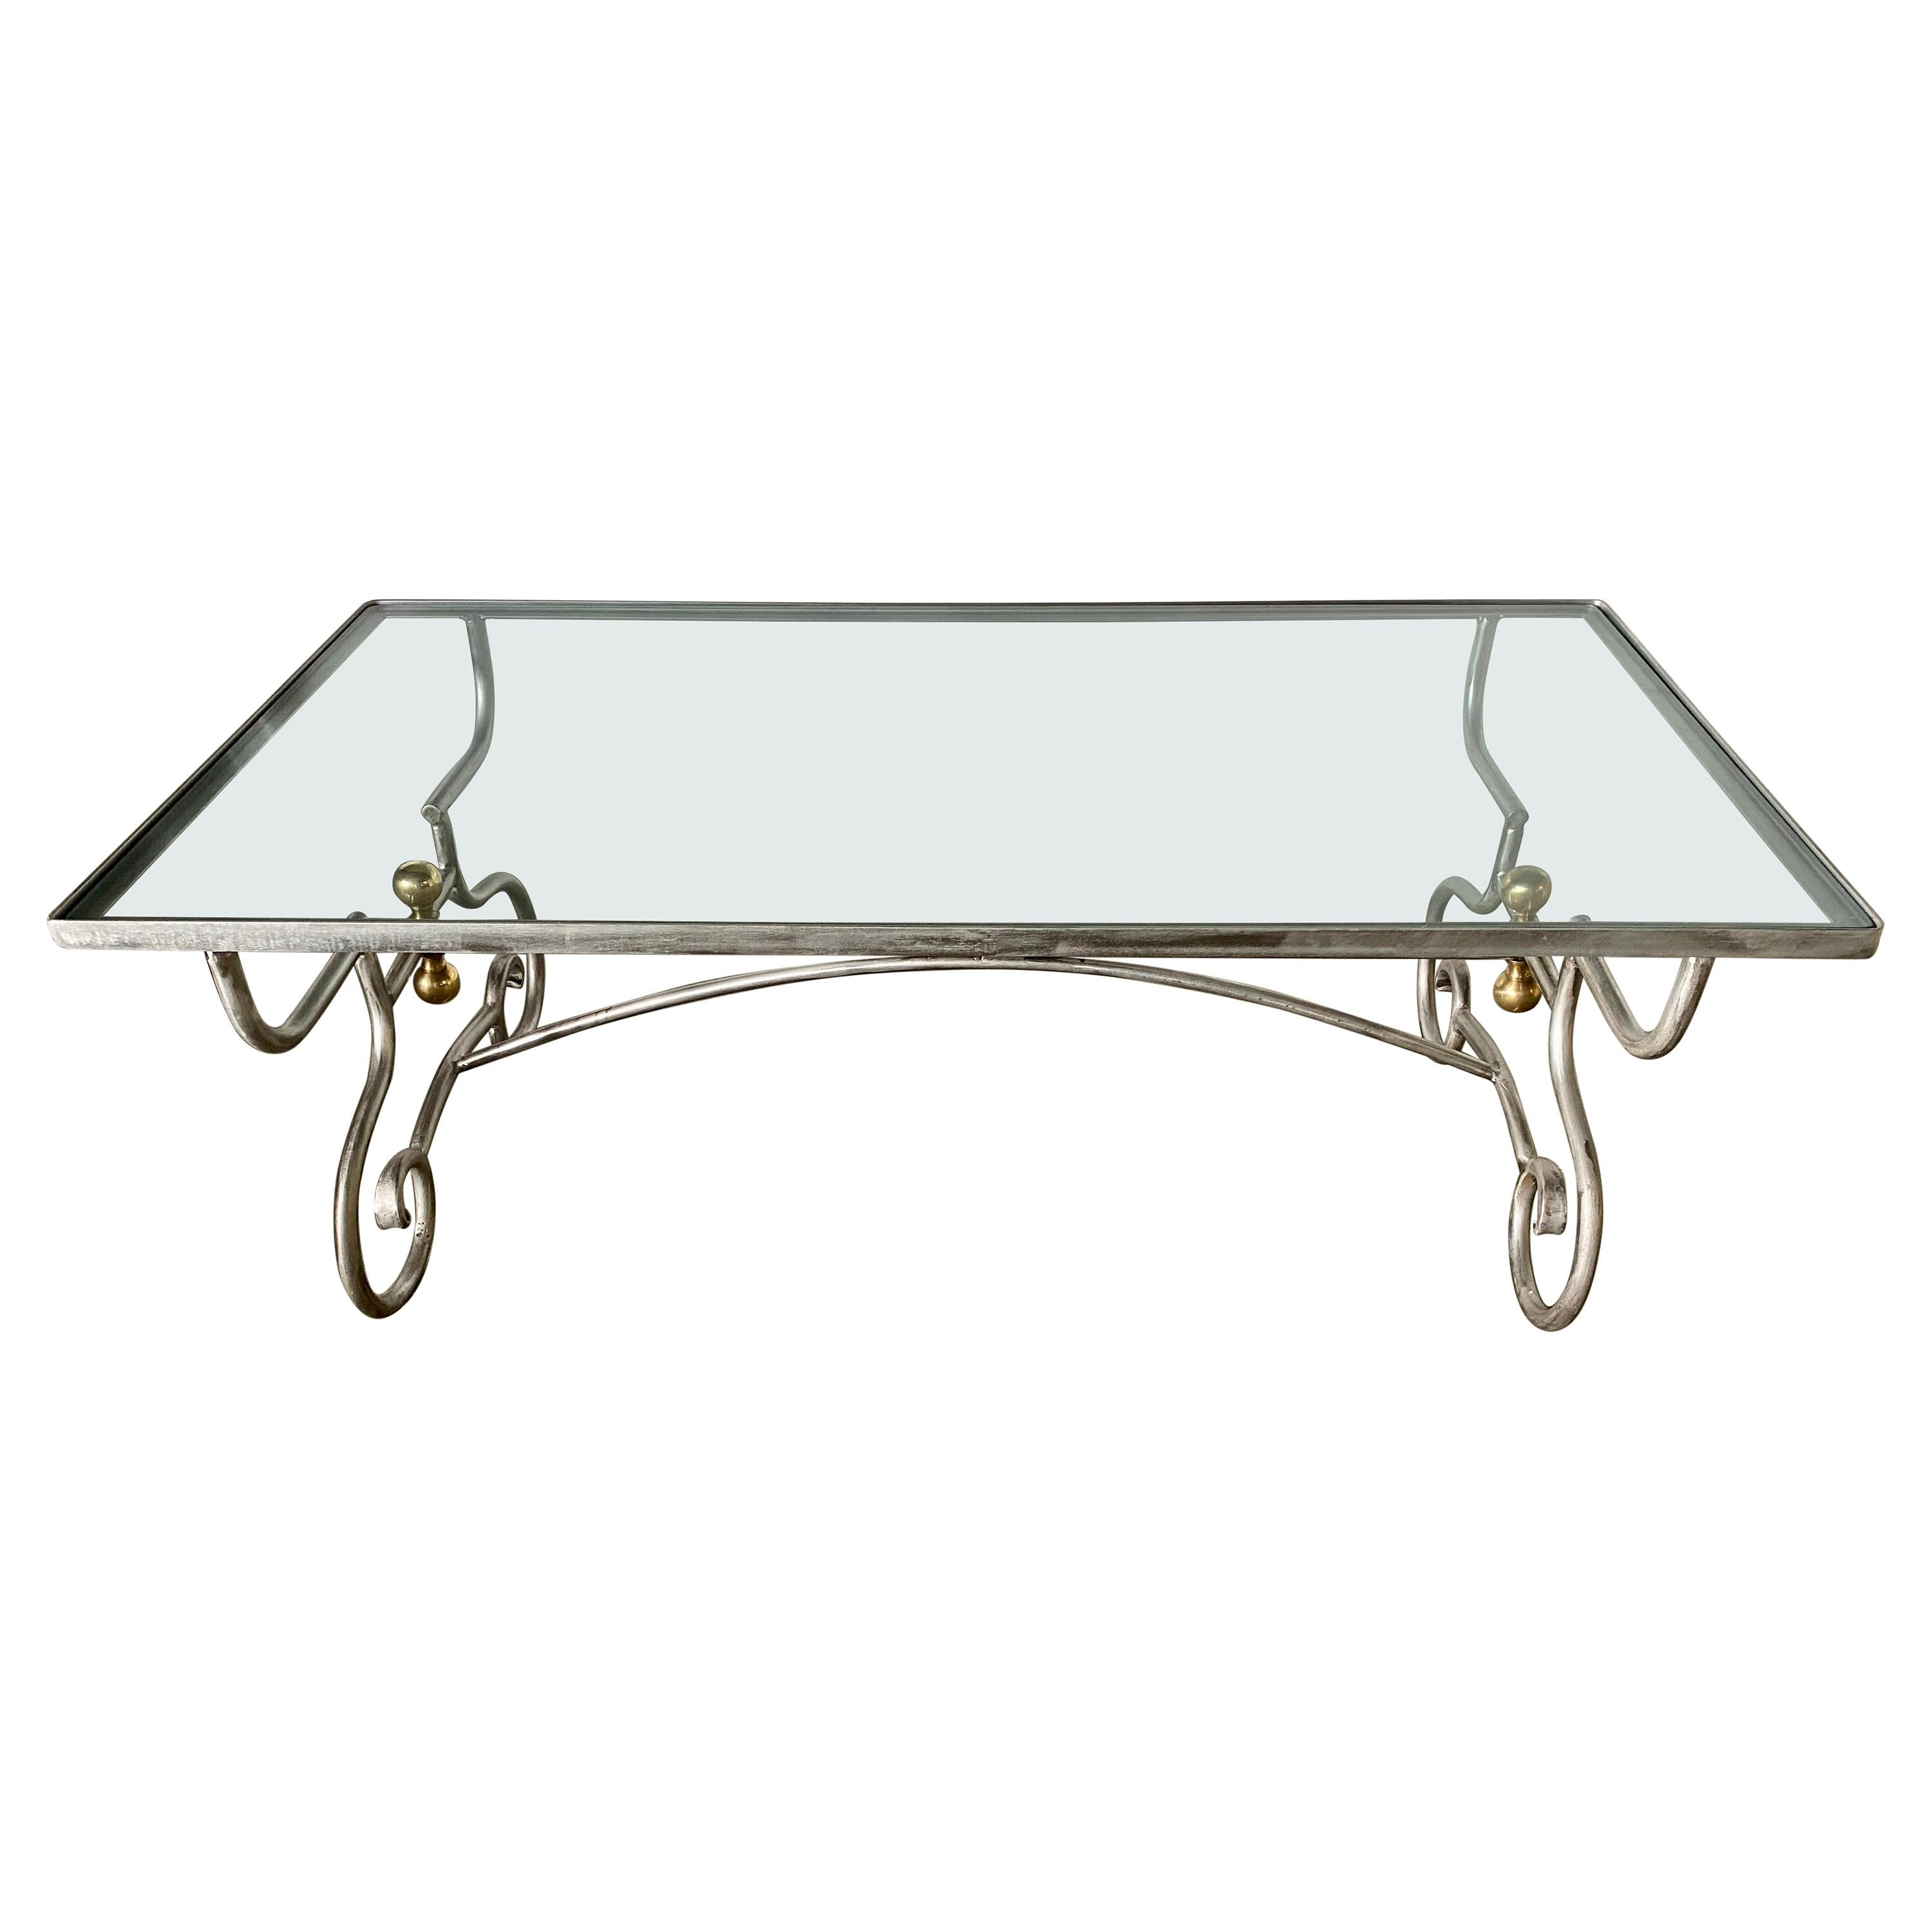 Contemporary Wrought Iron and Glass Coffee Table